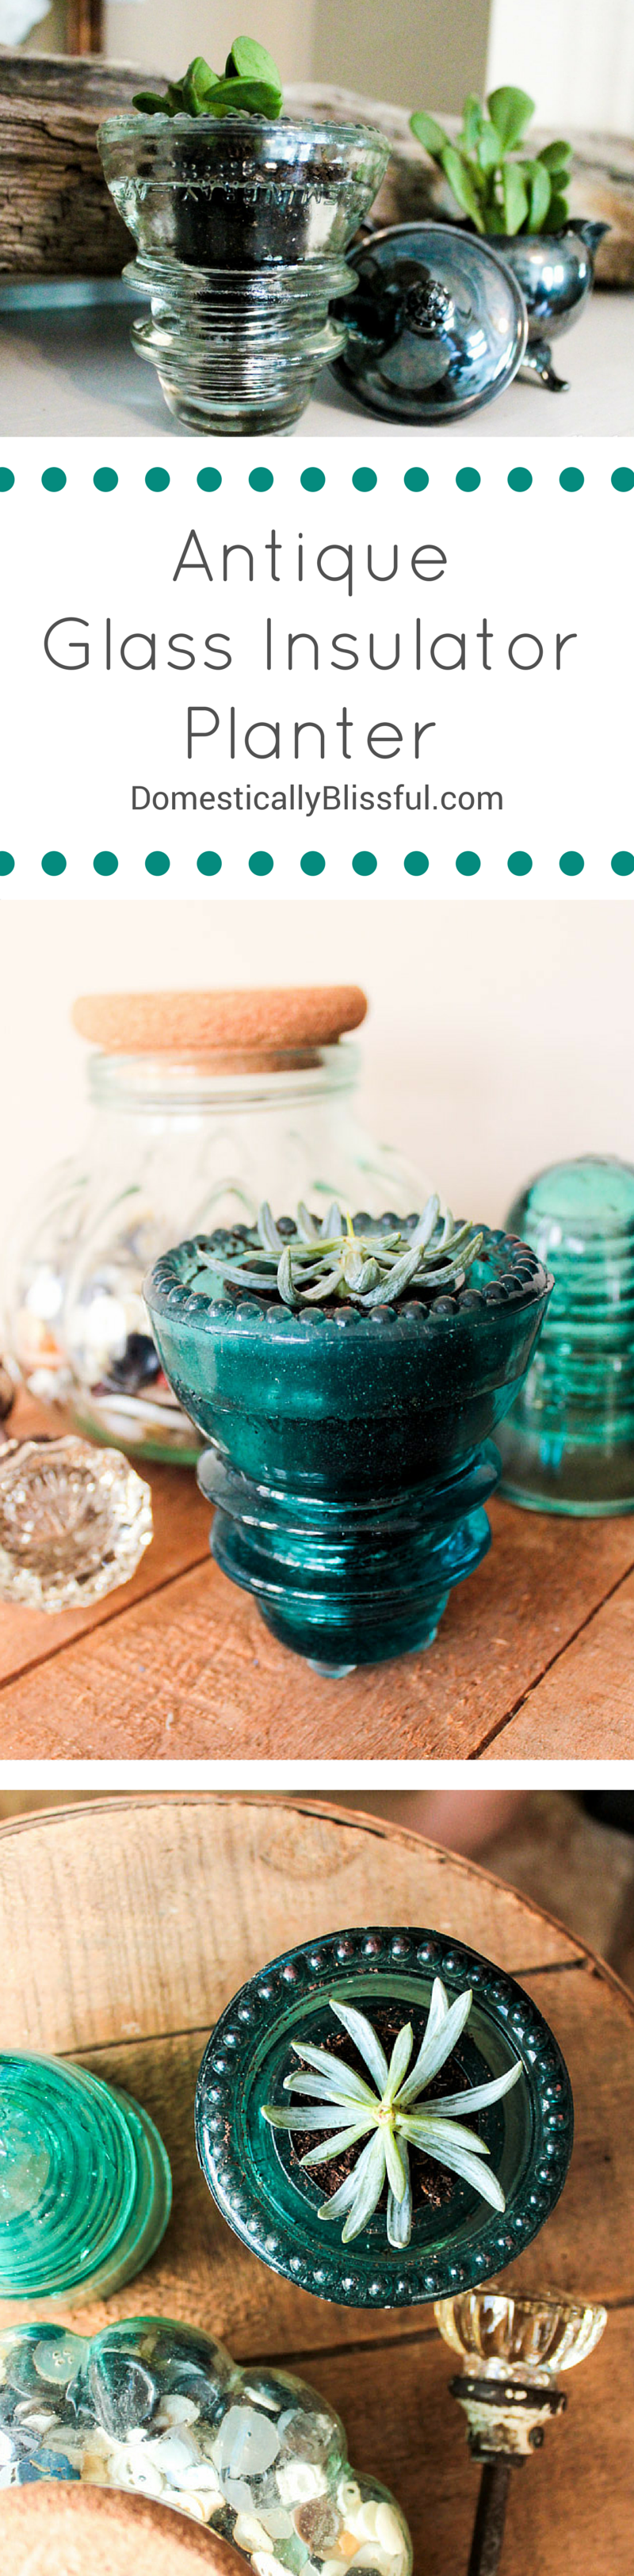 Antique Glass Insulator Planter by Domestically Blissful